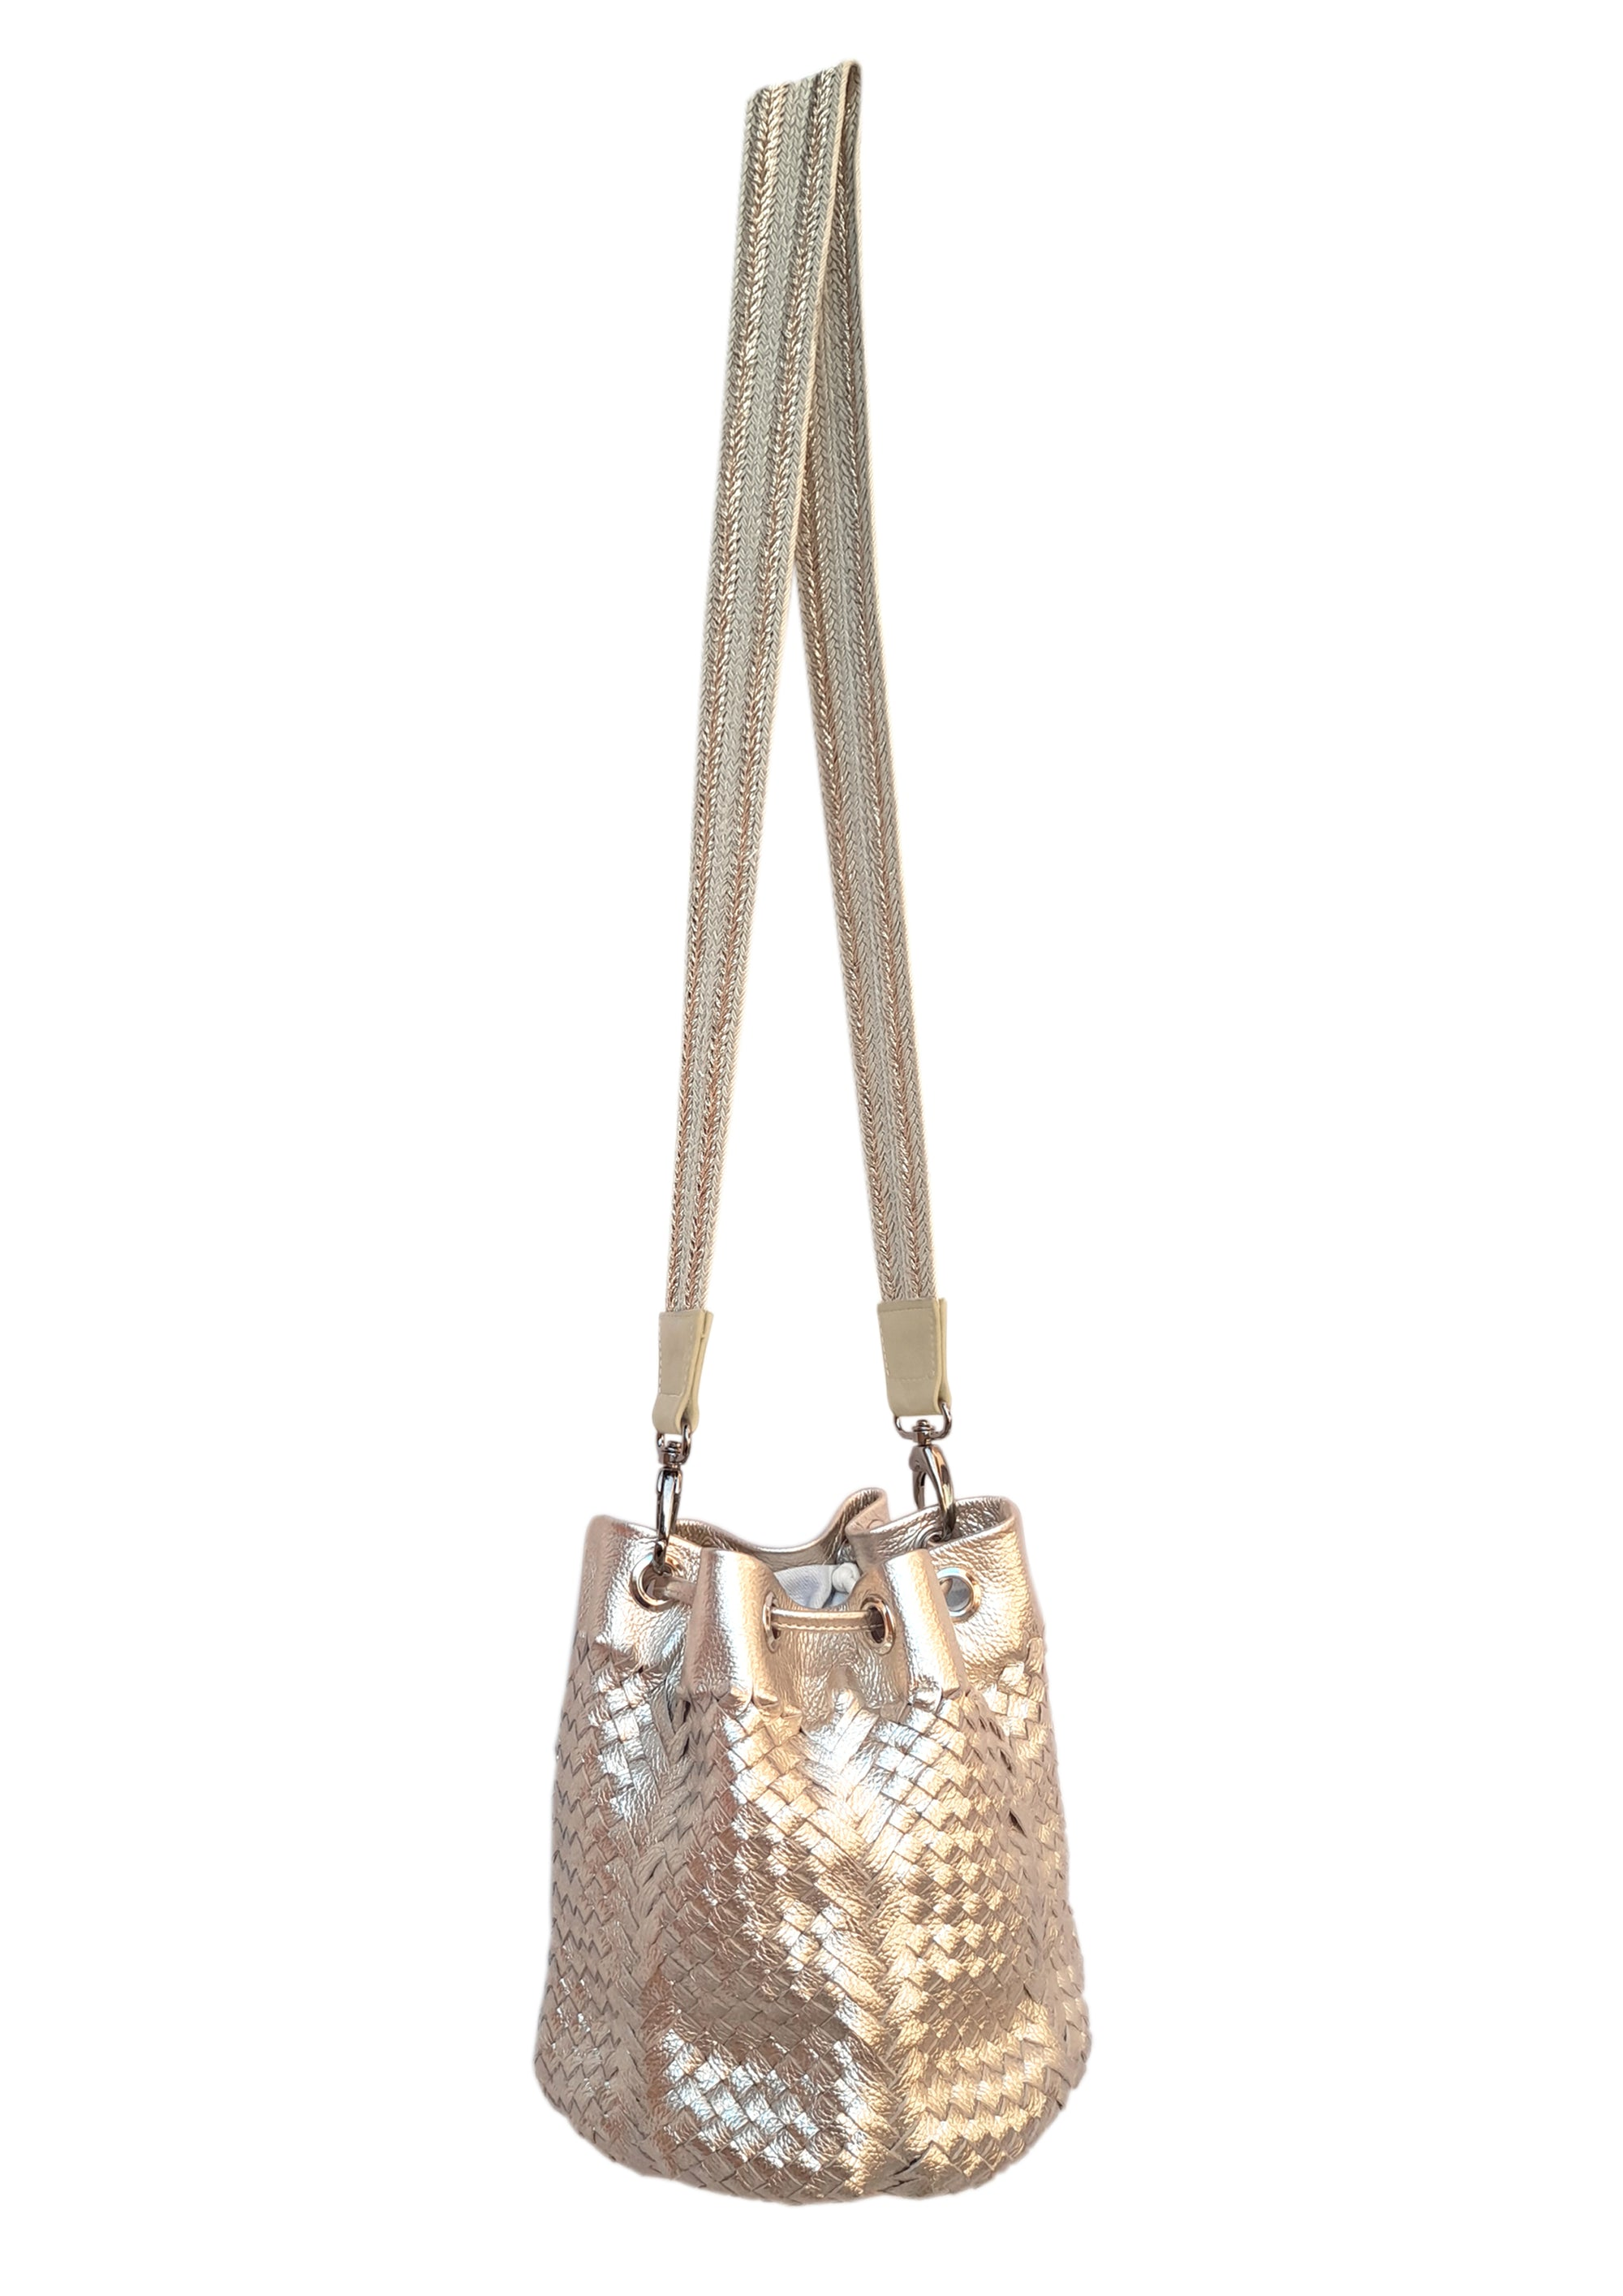 Angelo Woven Leather Bag - Gold